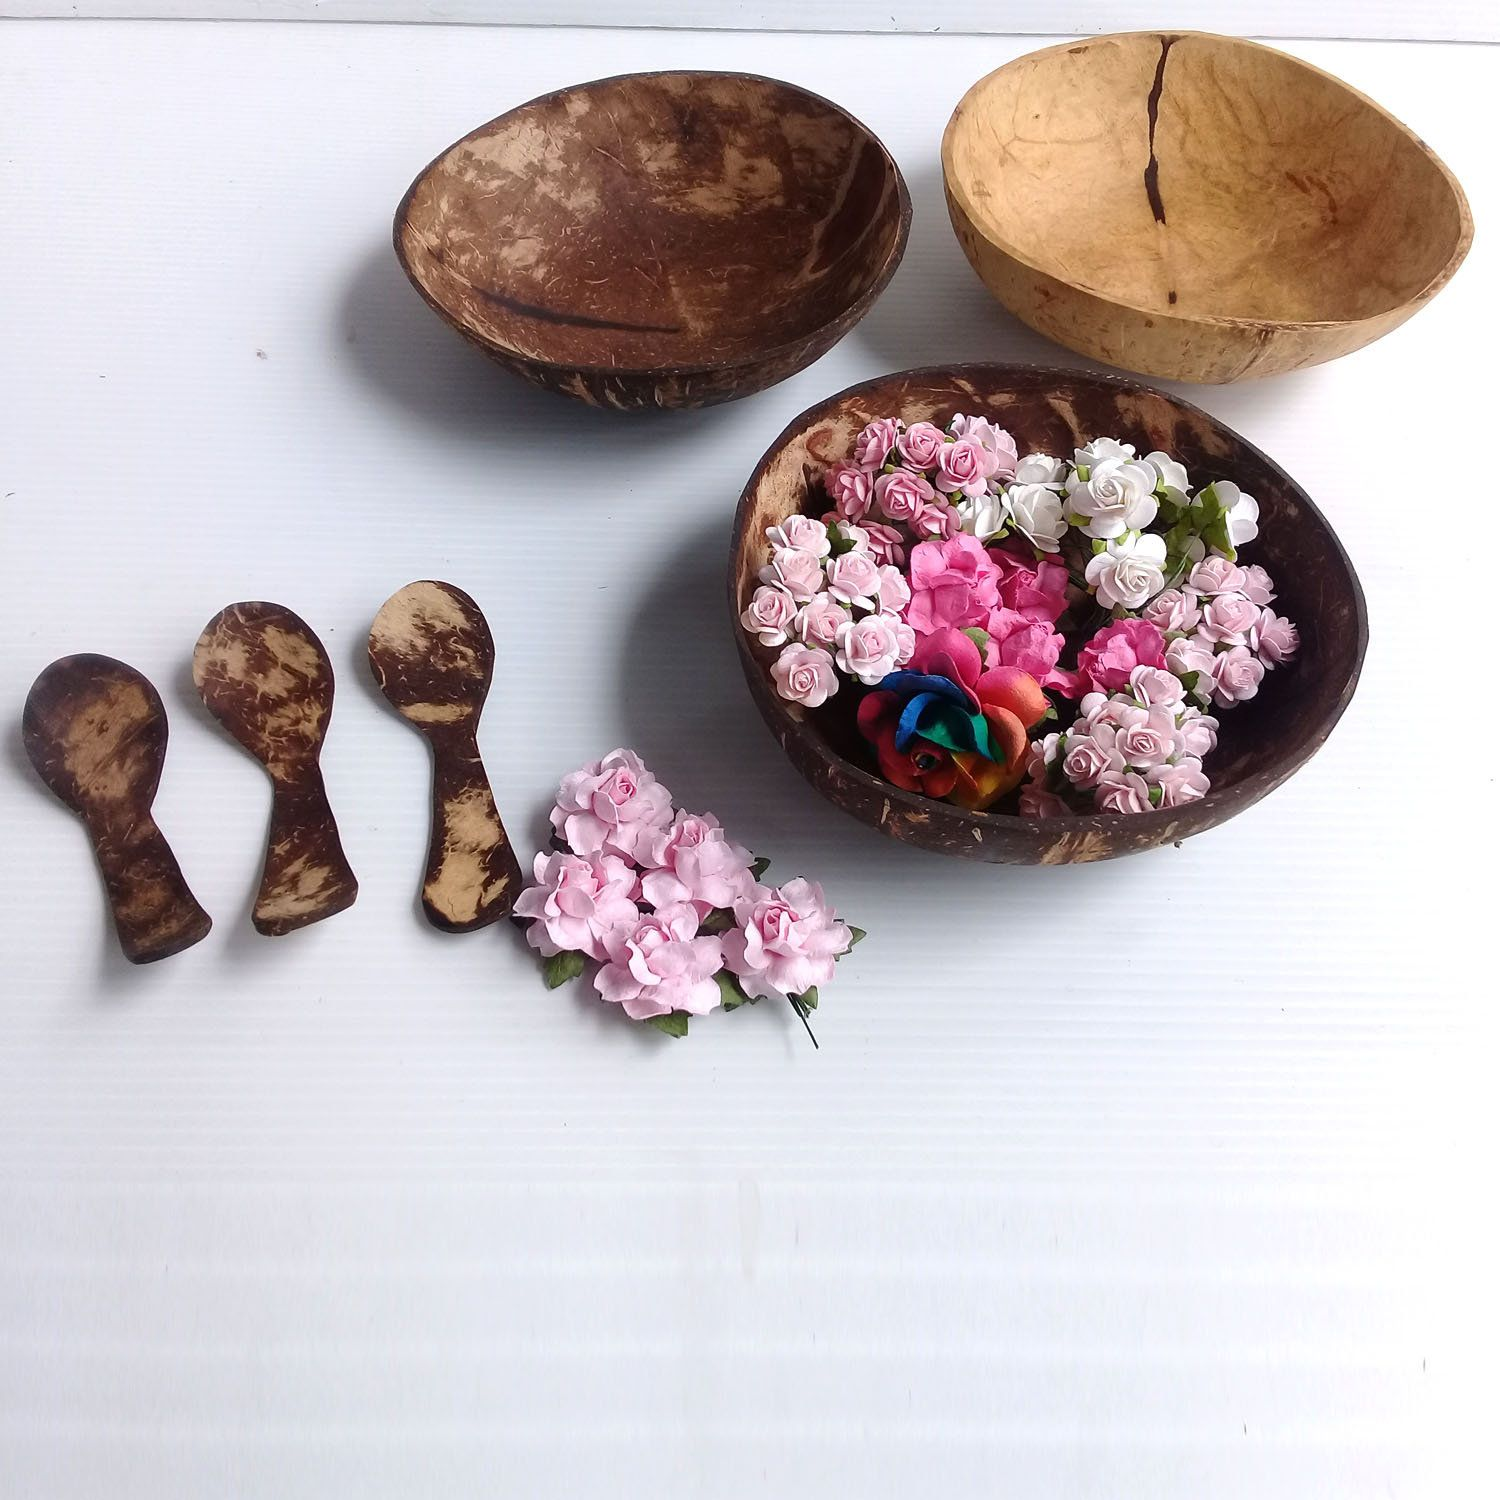 set of smallest  size coconut shell plates set 3 bowls,6x 2 inch  vegan gift,wooden gift,birthday gift,easter,wedding gift,gift